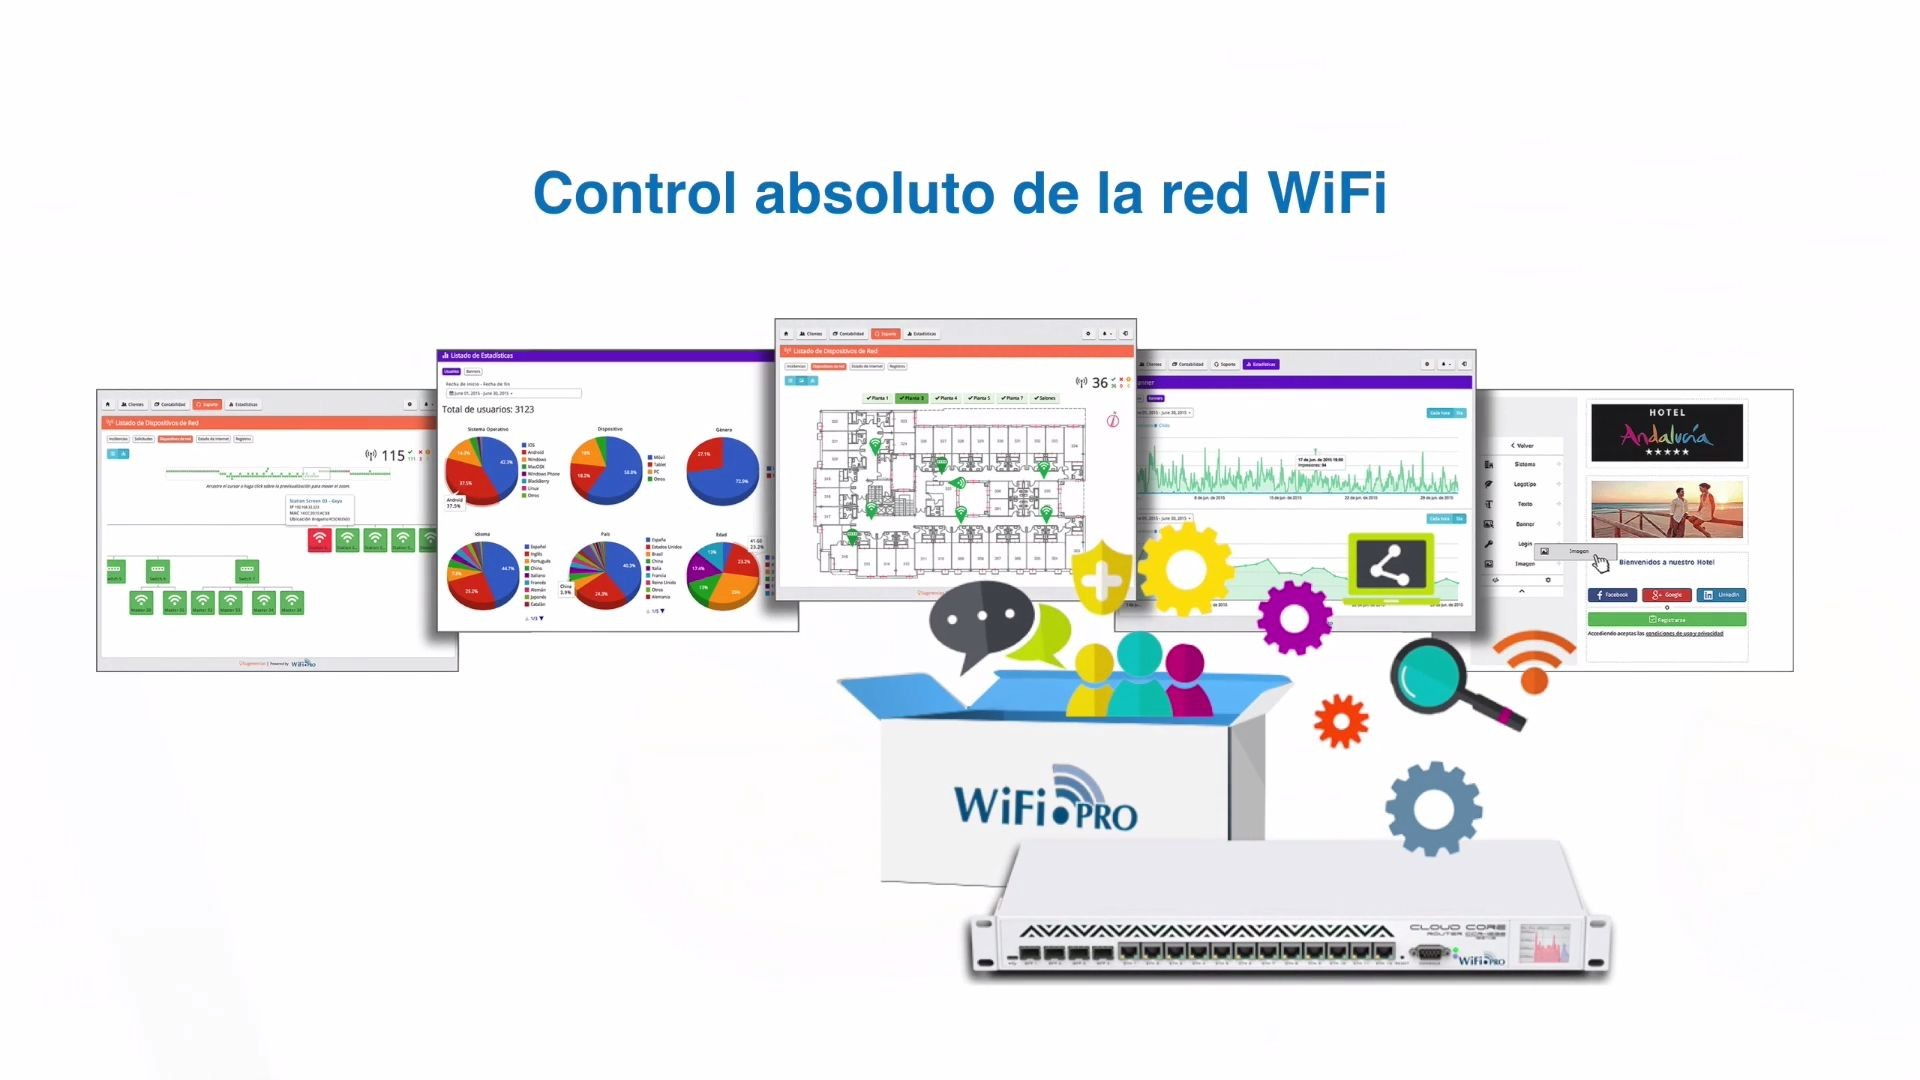 wifipro